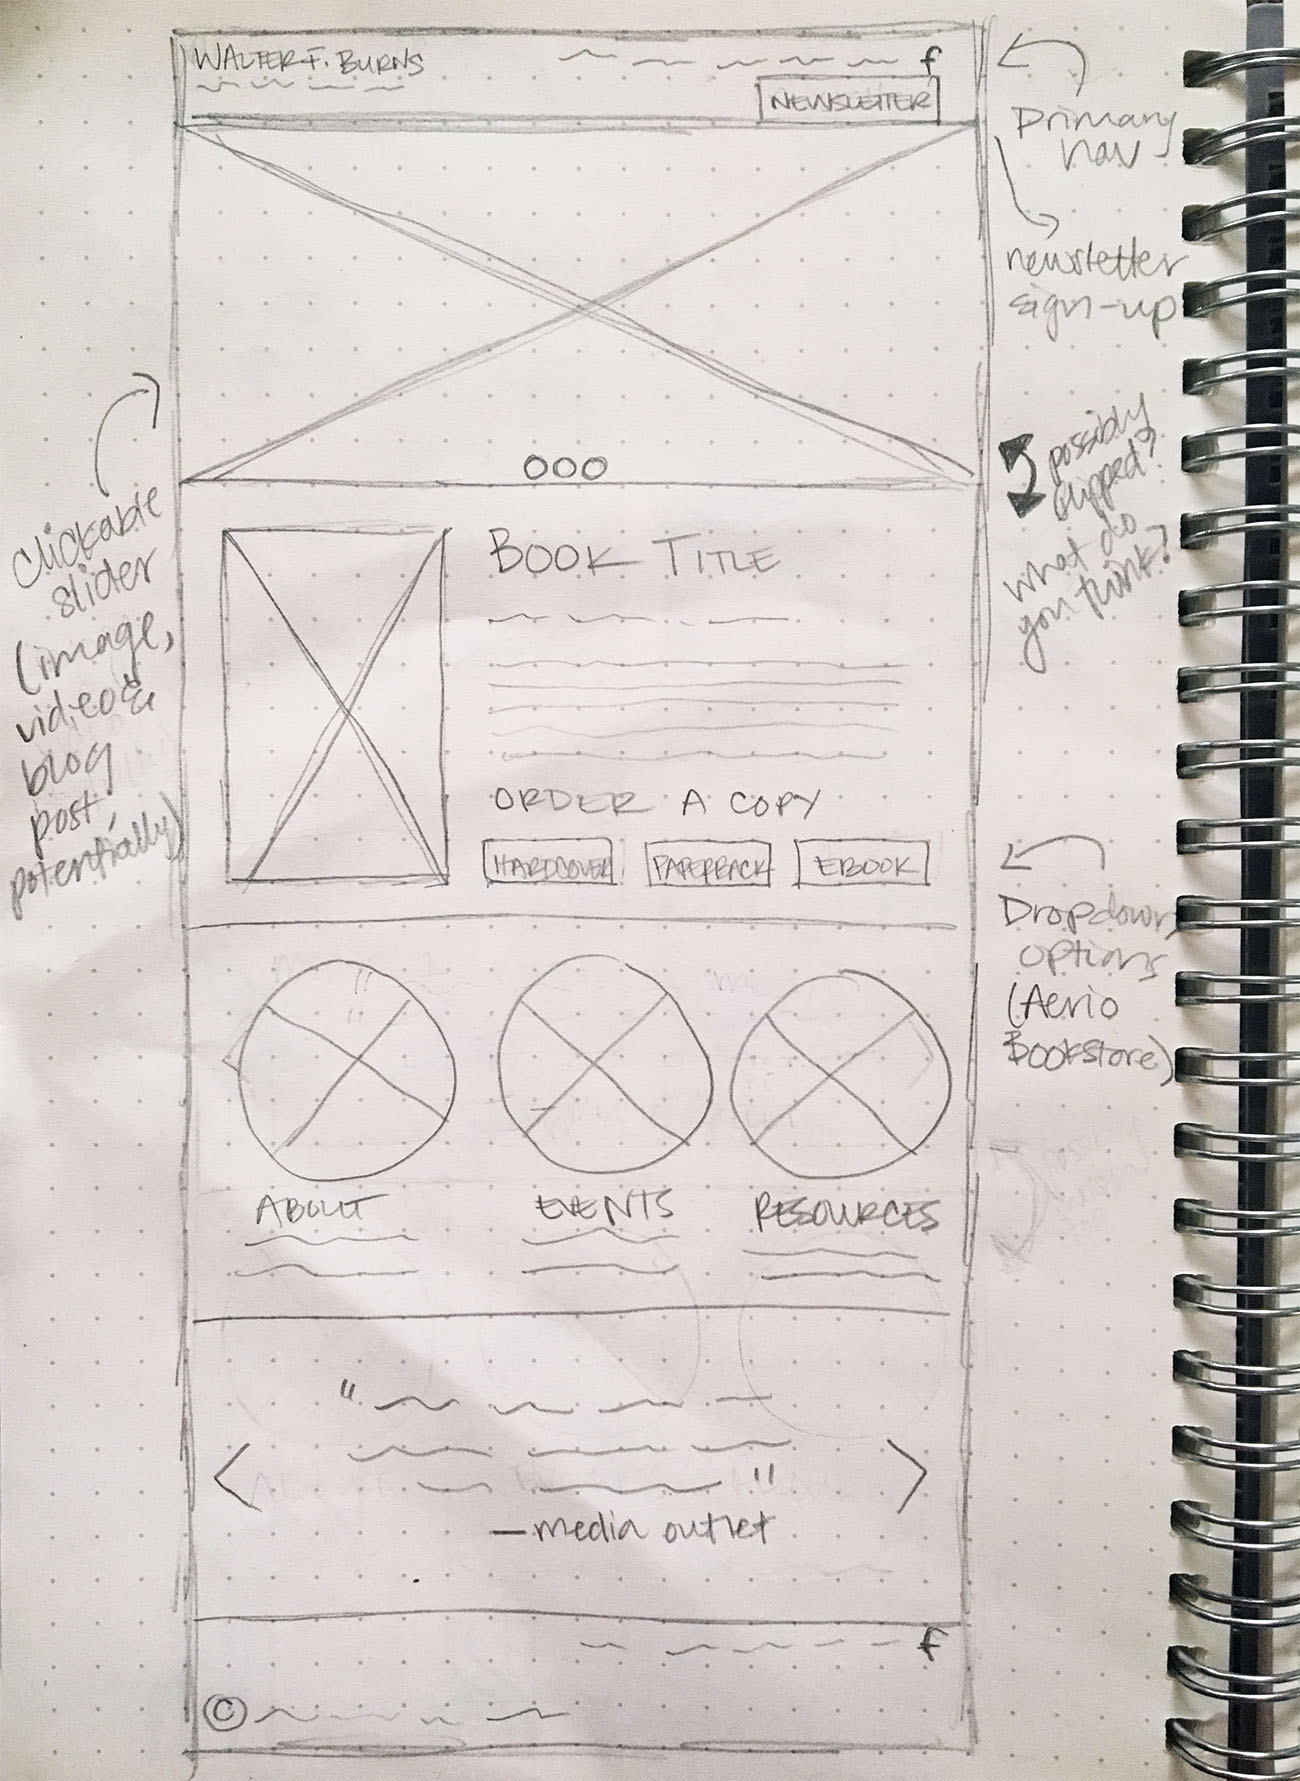 A first-round wireframe